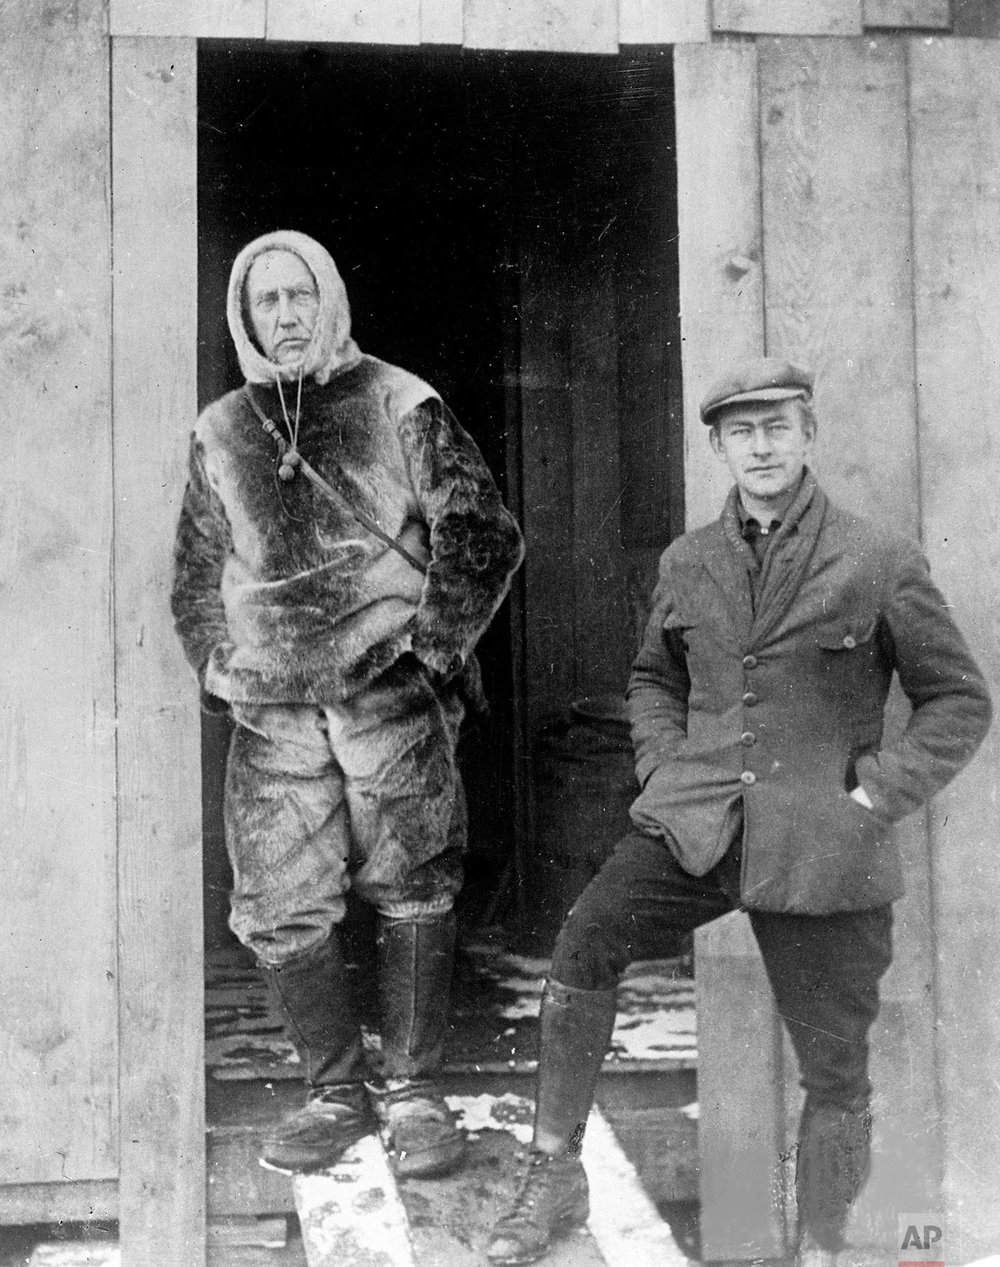 Norwegian explorer Roald Amundsen, left, stands with Lieutenant Undahl, who is his pilot in the attempt to fly over the North Pole, at the doorway to his hut on the Arctic ice in 1926. In 1911 Amundsen beat Captain Robert Scott to be the first man to reach the South Pole. (AP Photo)